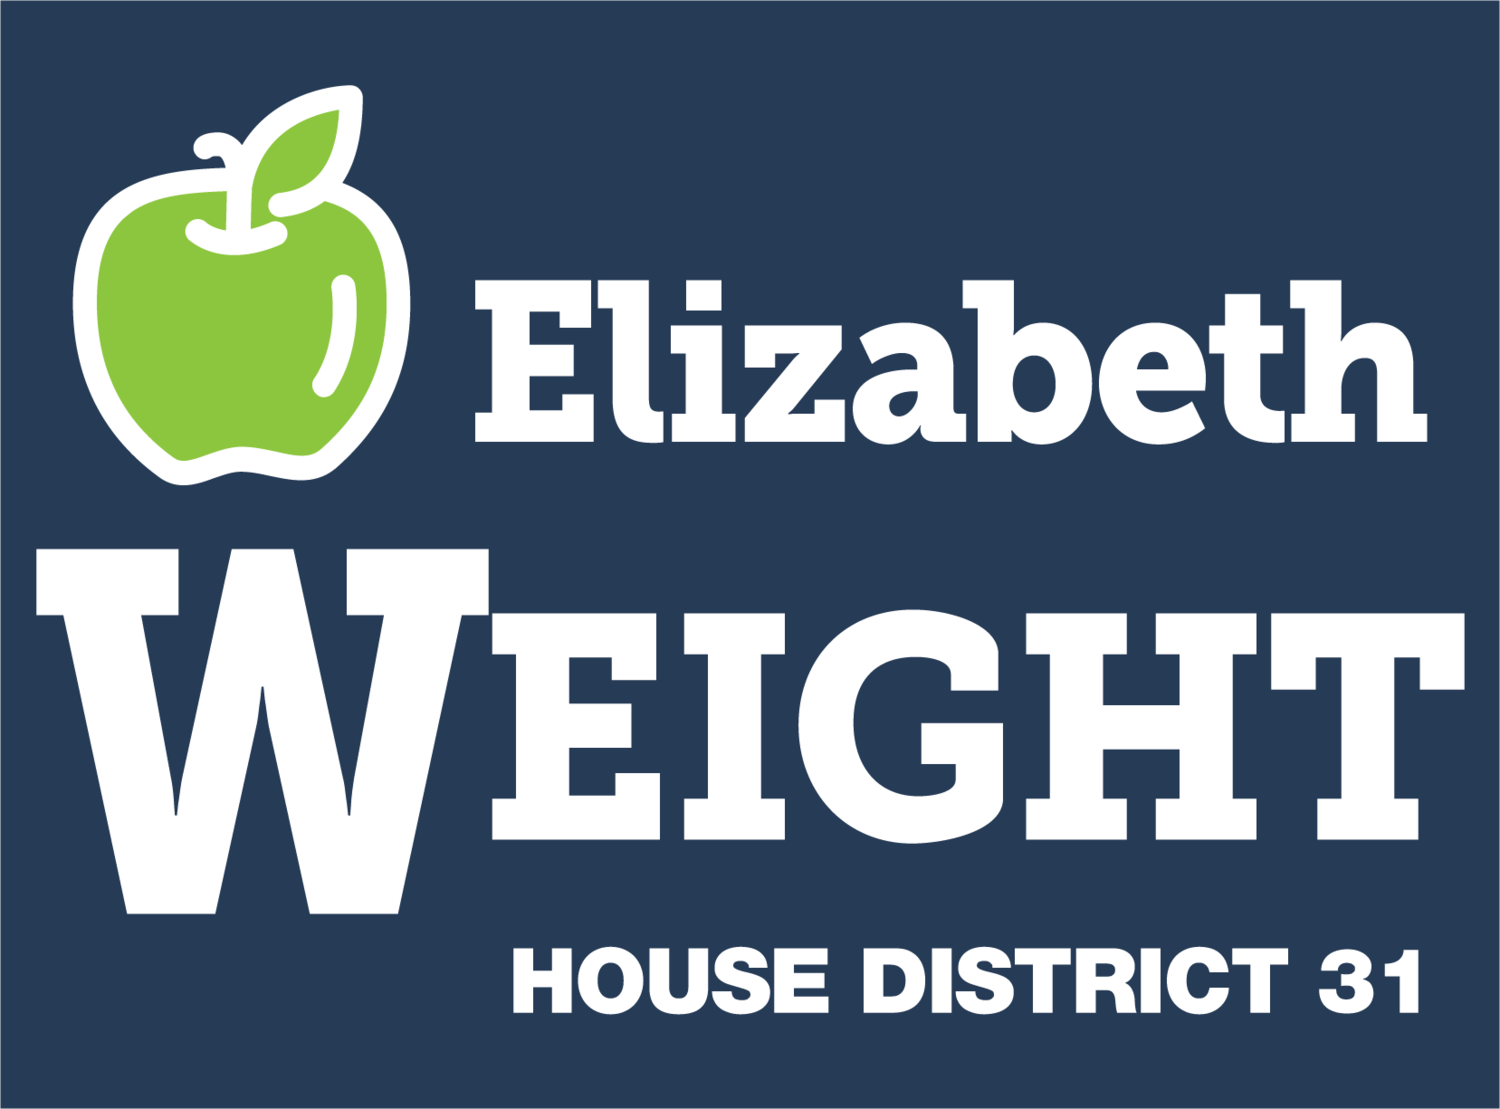 Representative Elizabeth Weight